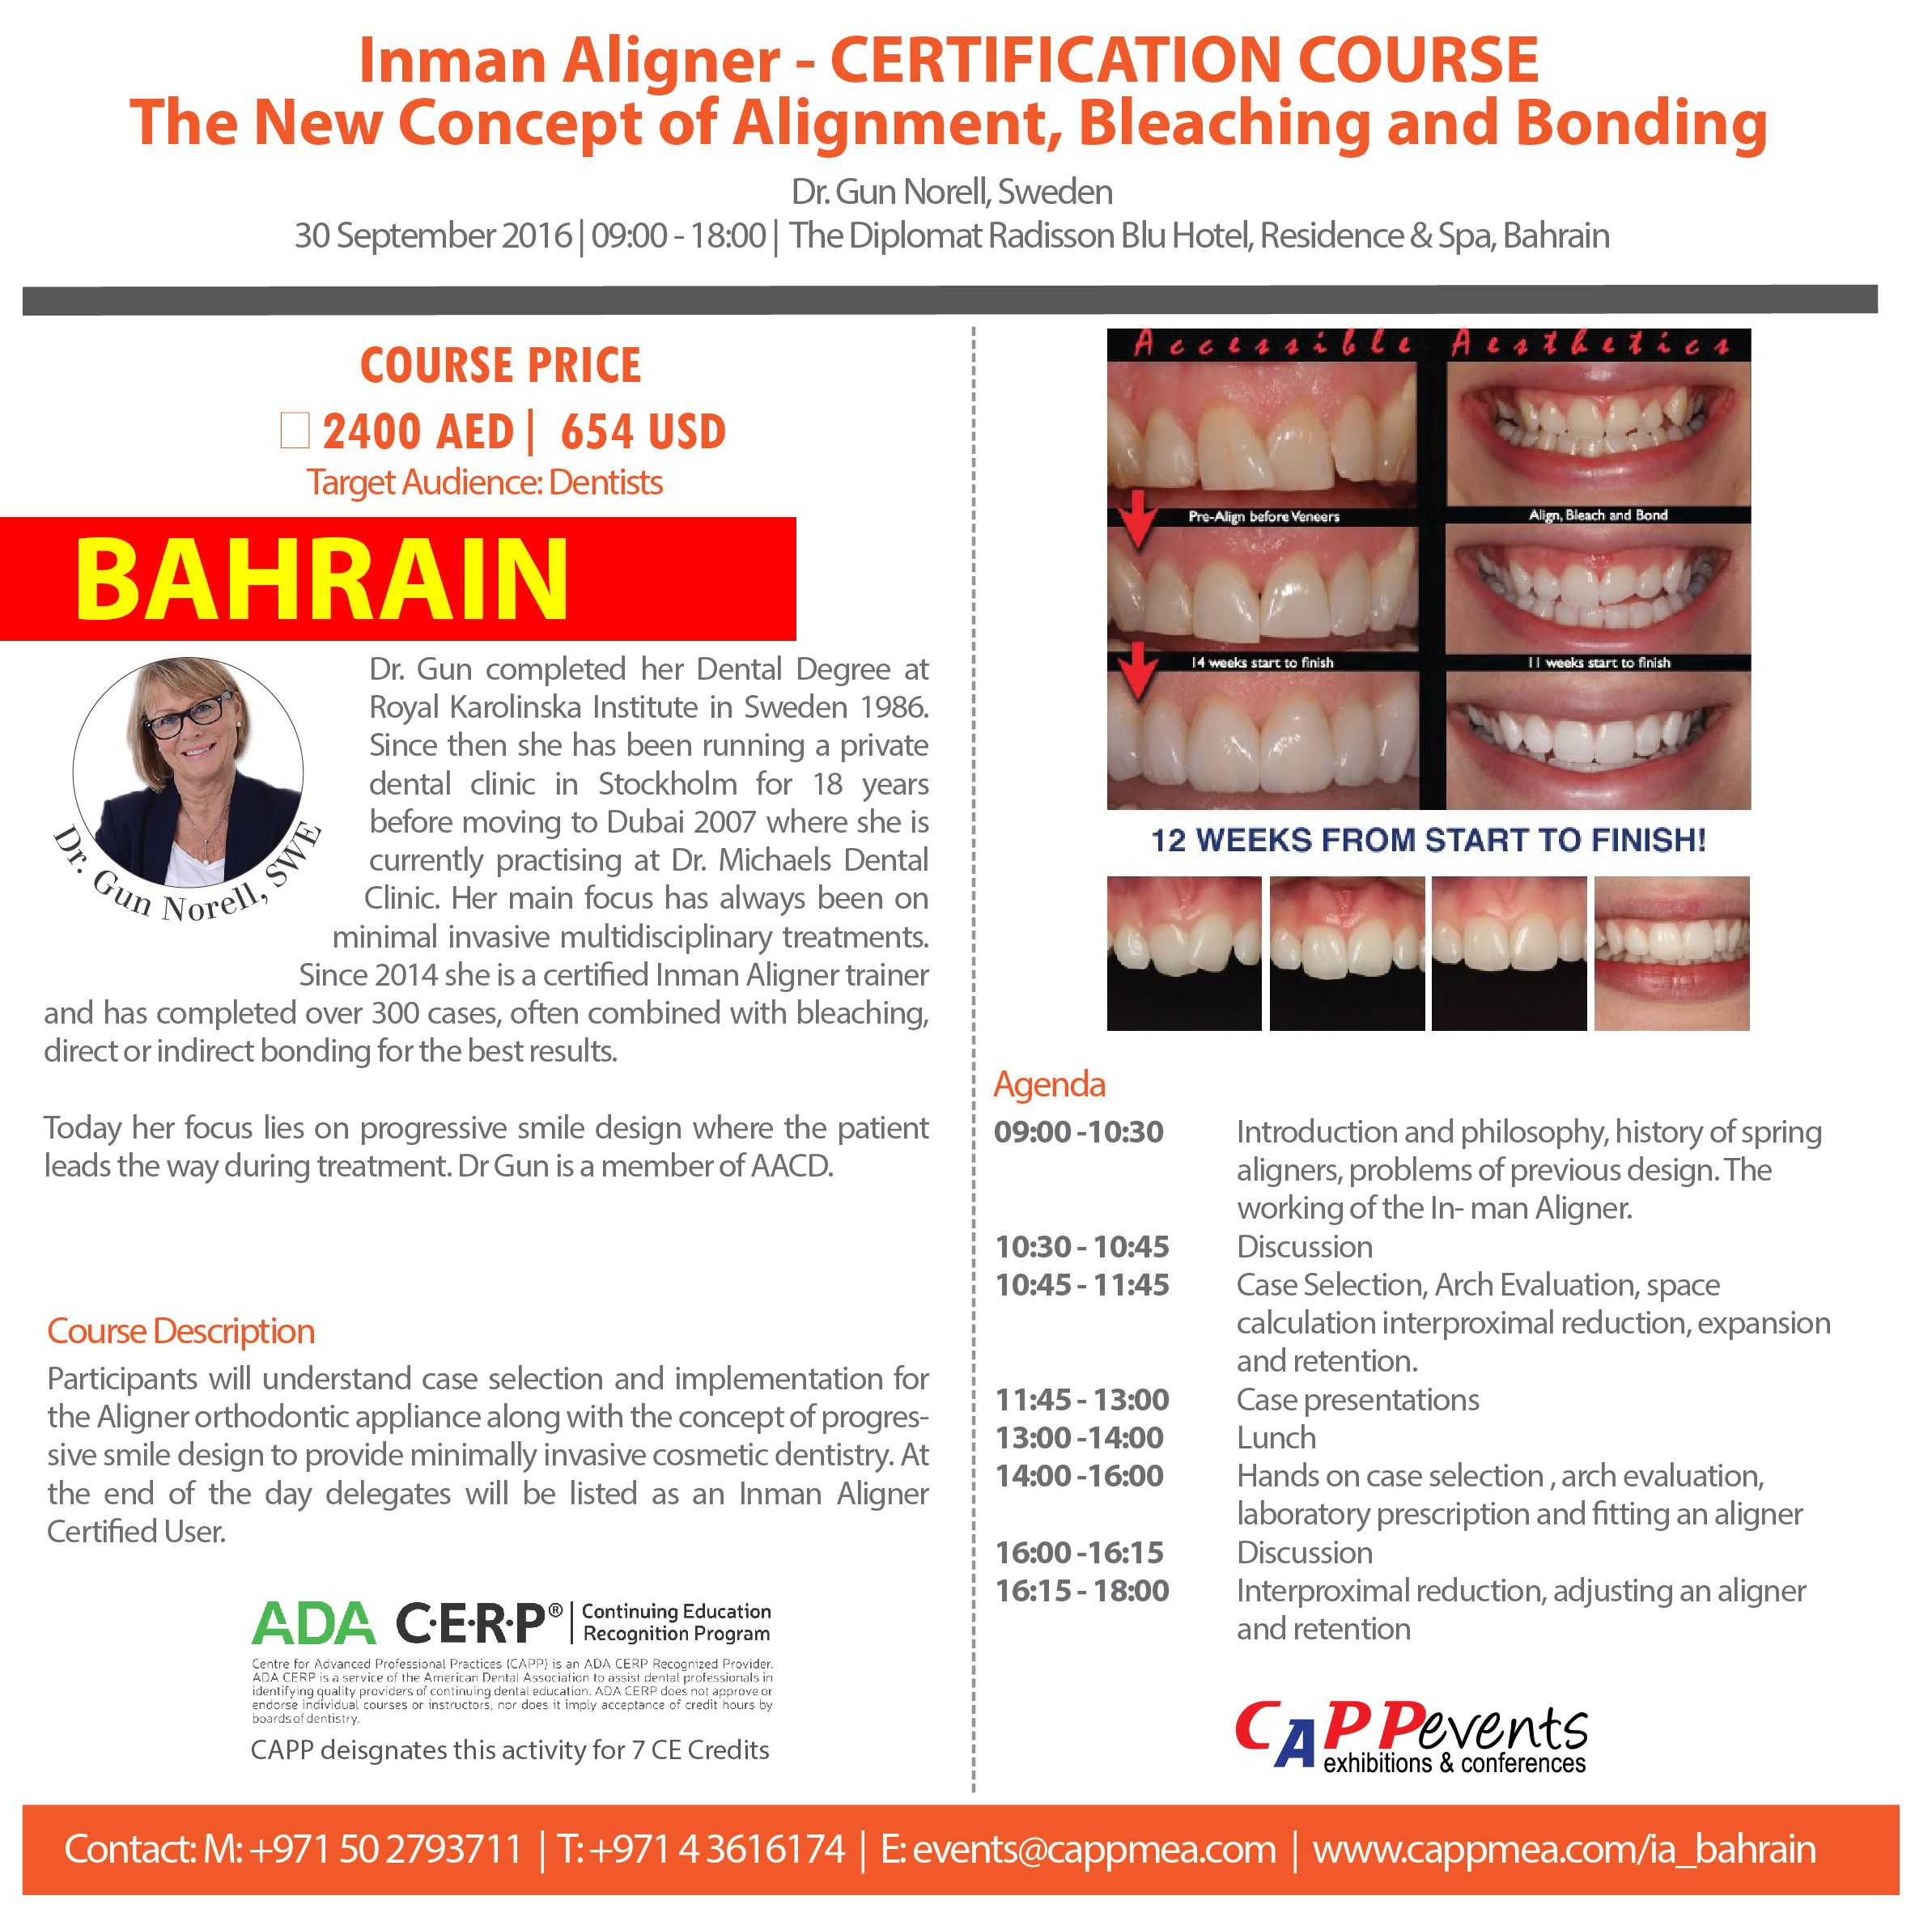 Get your Inman Aligner certification in Bahrain on 30th of September ...